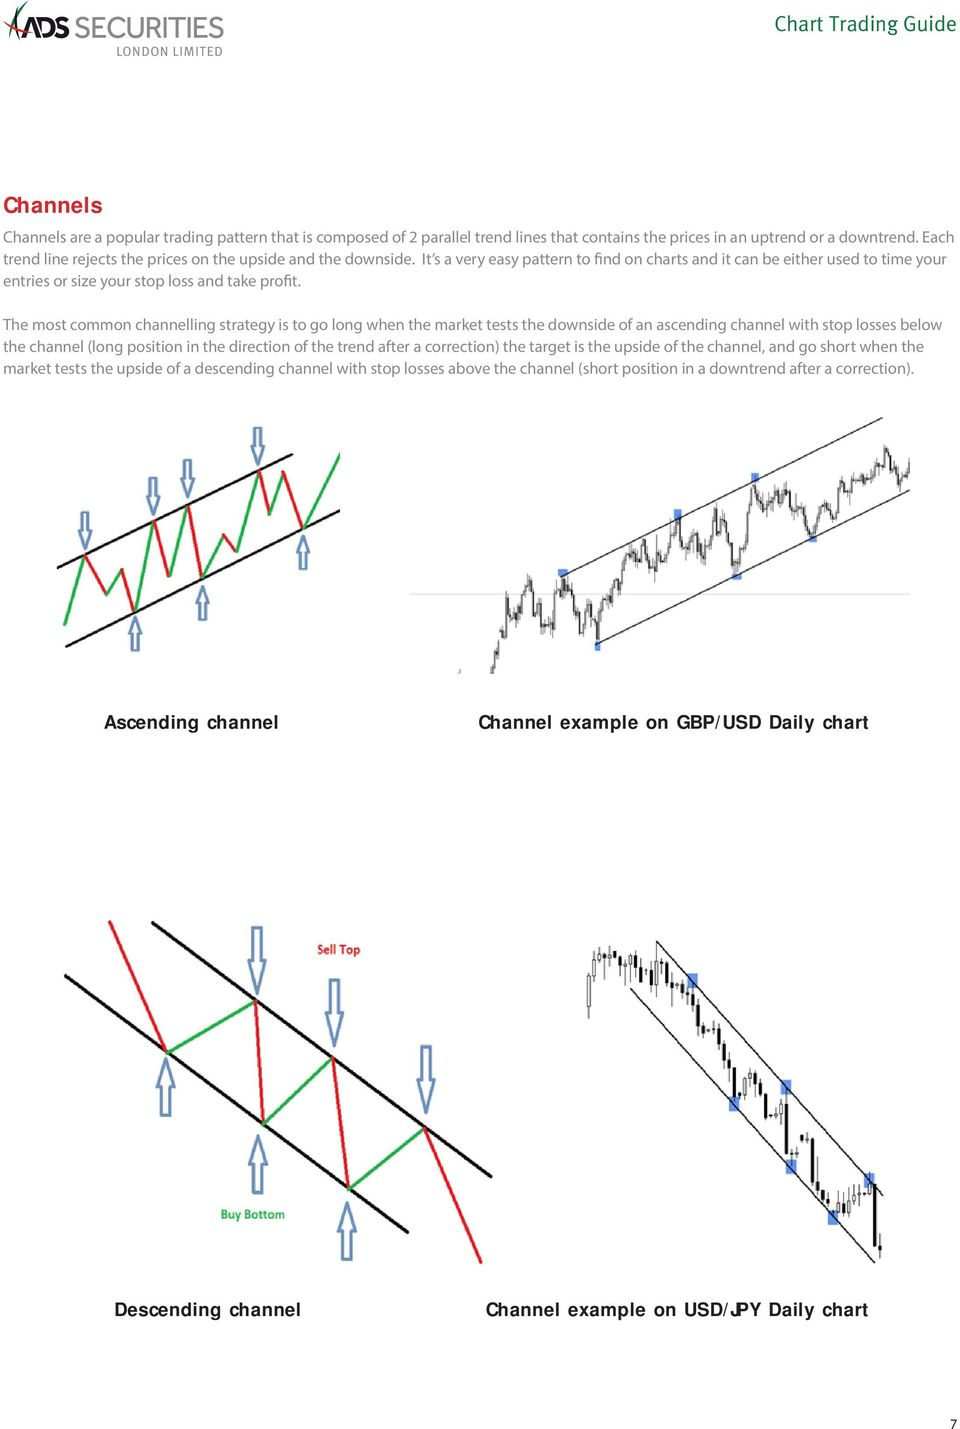 The most common channelling strategy is to go long when the market tests the downside of an ascending channel with stop losses below the channel (long position in the direction of the trend after a